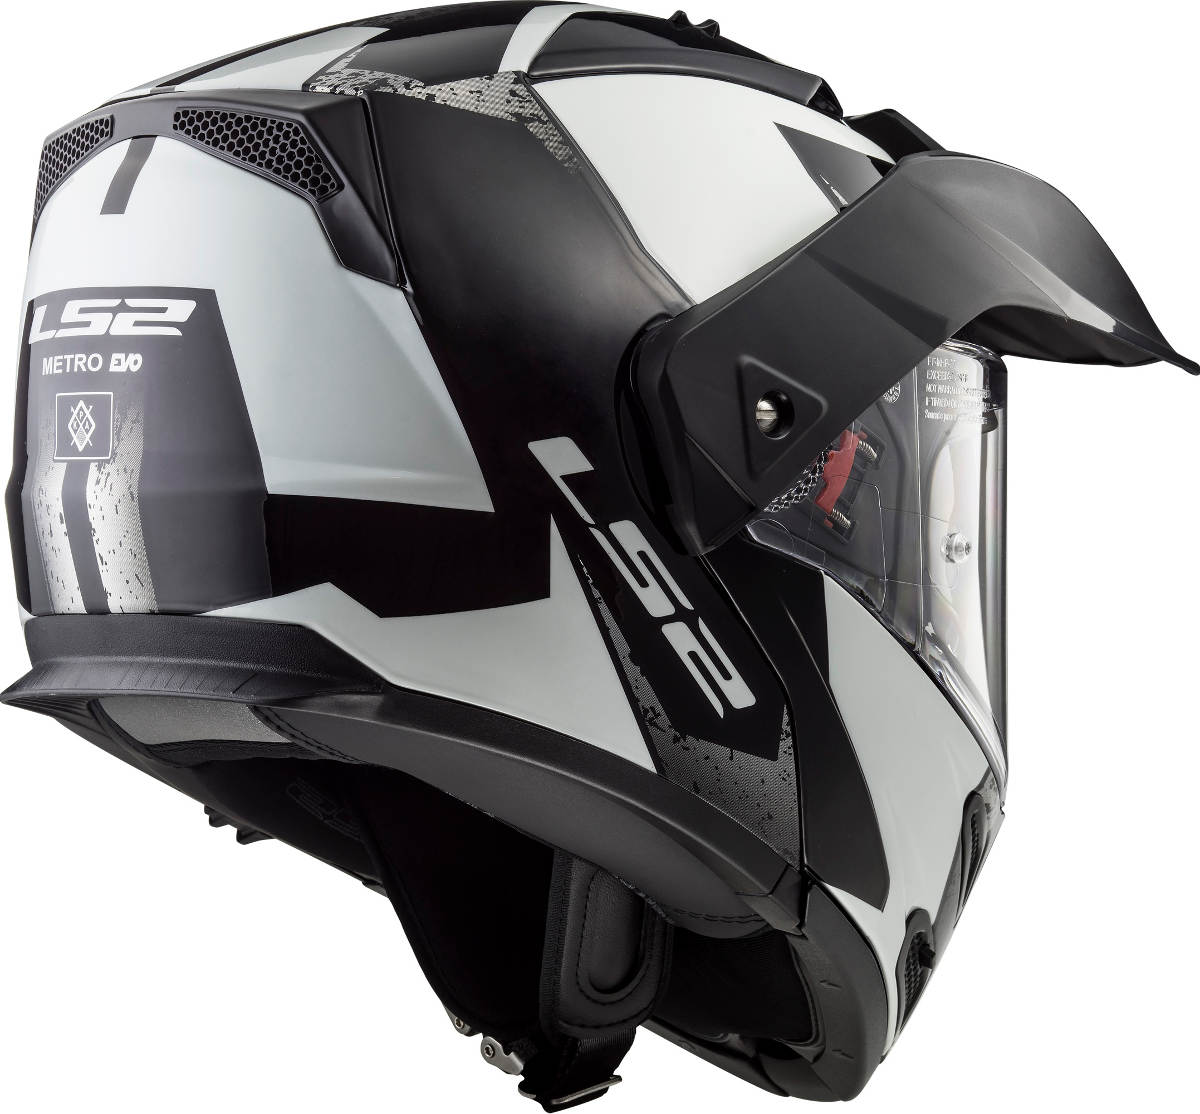 LS2 Metro Evo Helmet Sub White and Black Rear